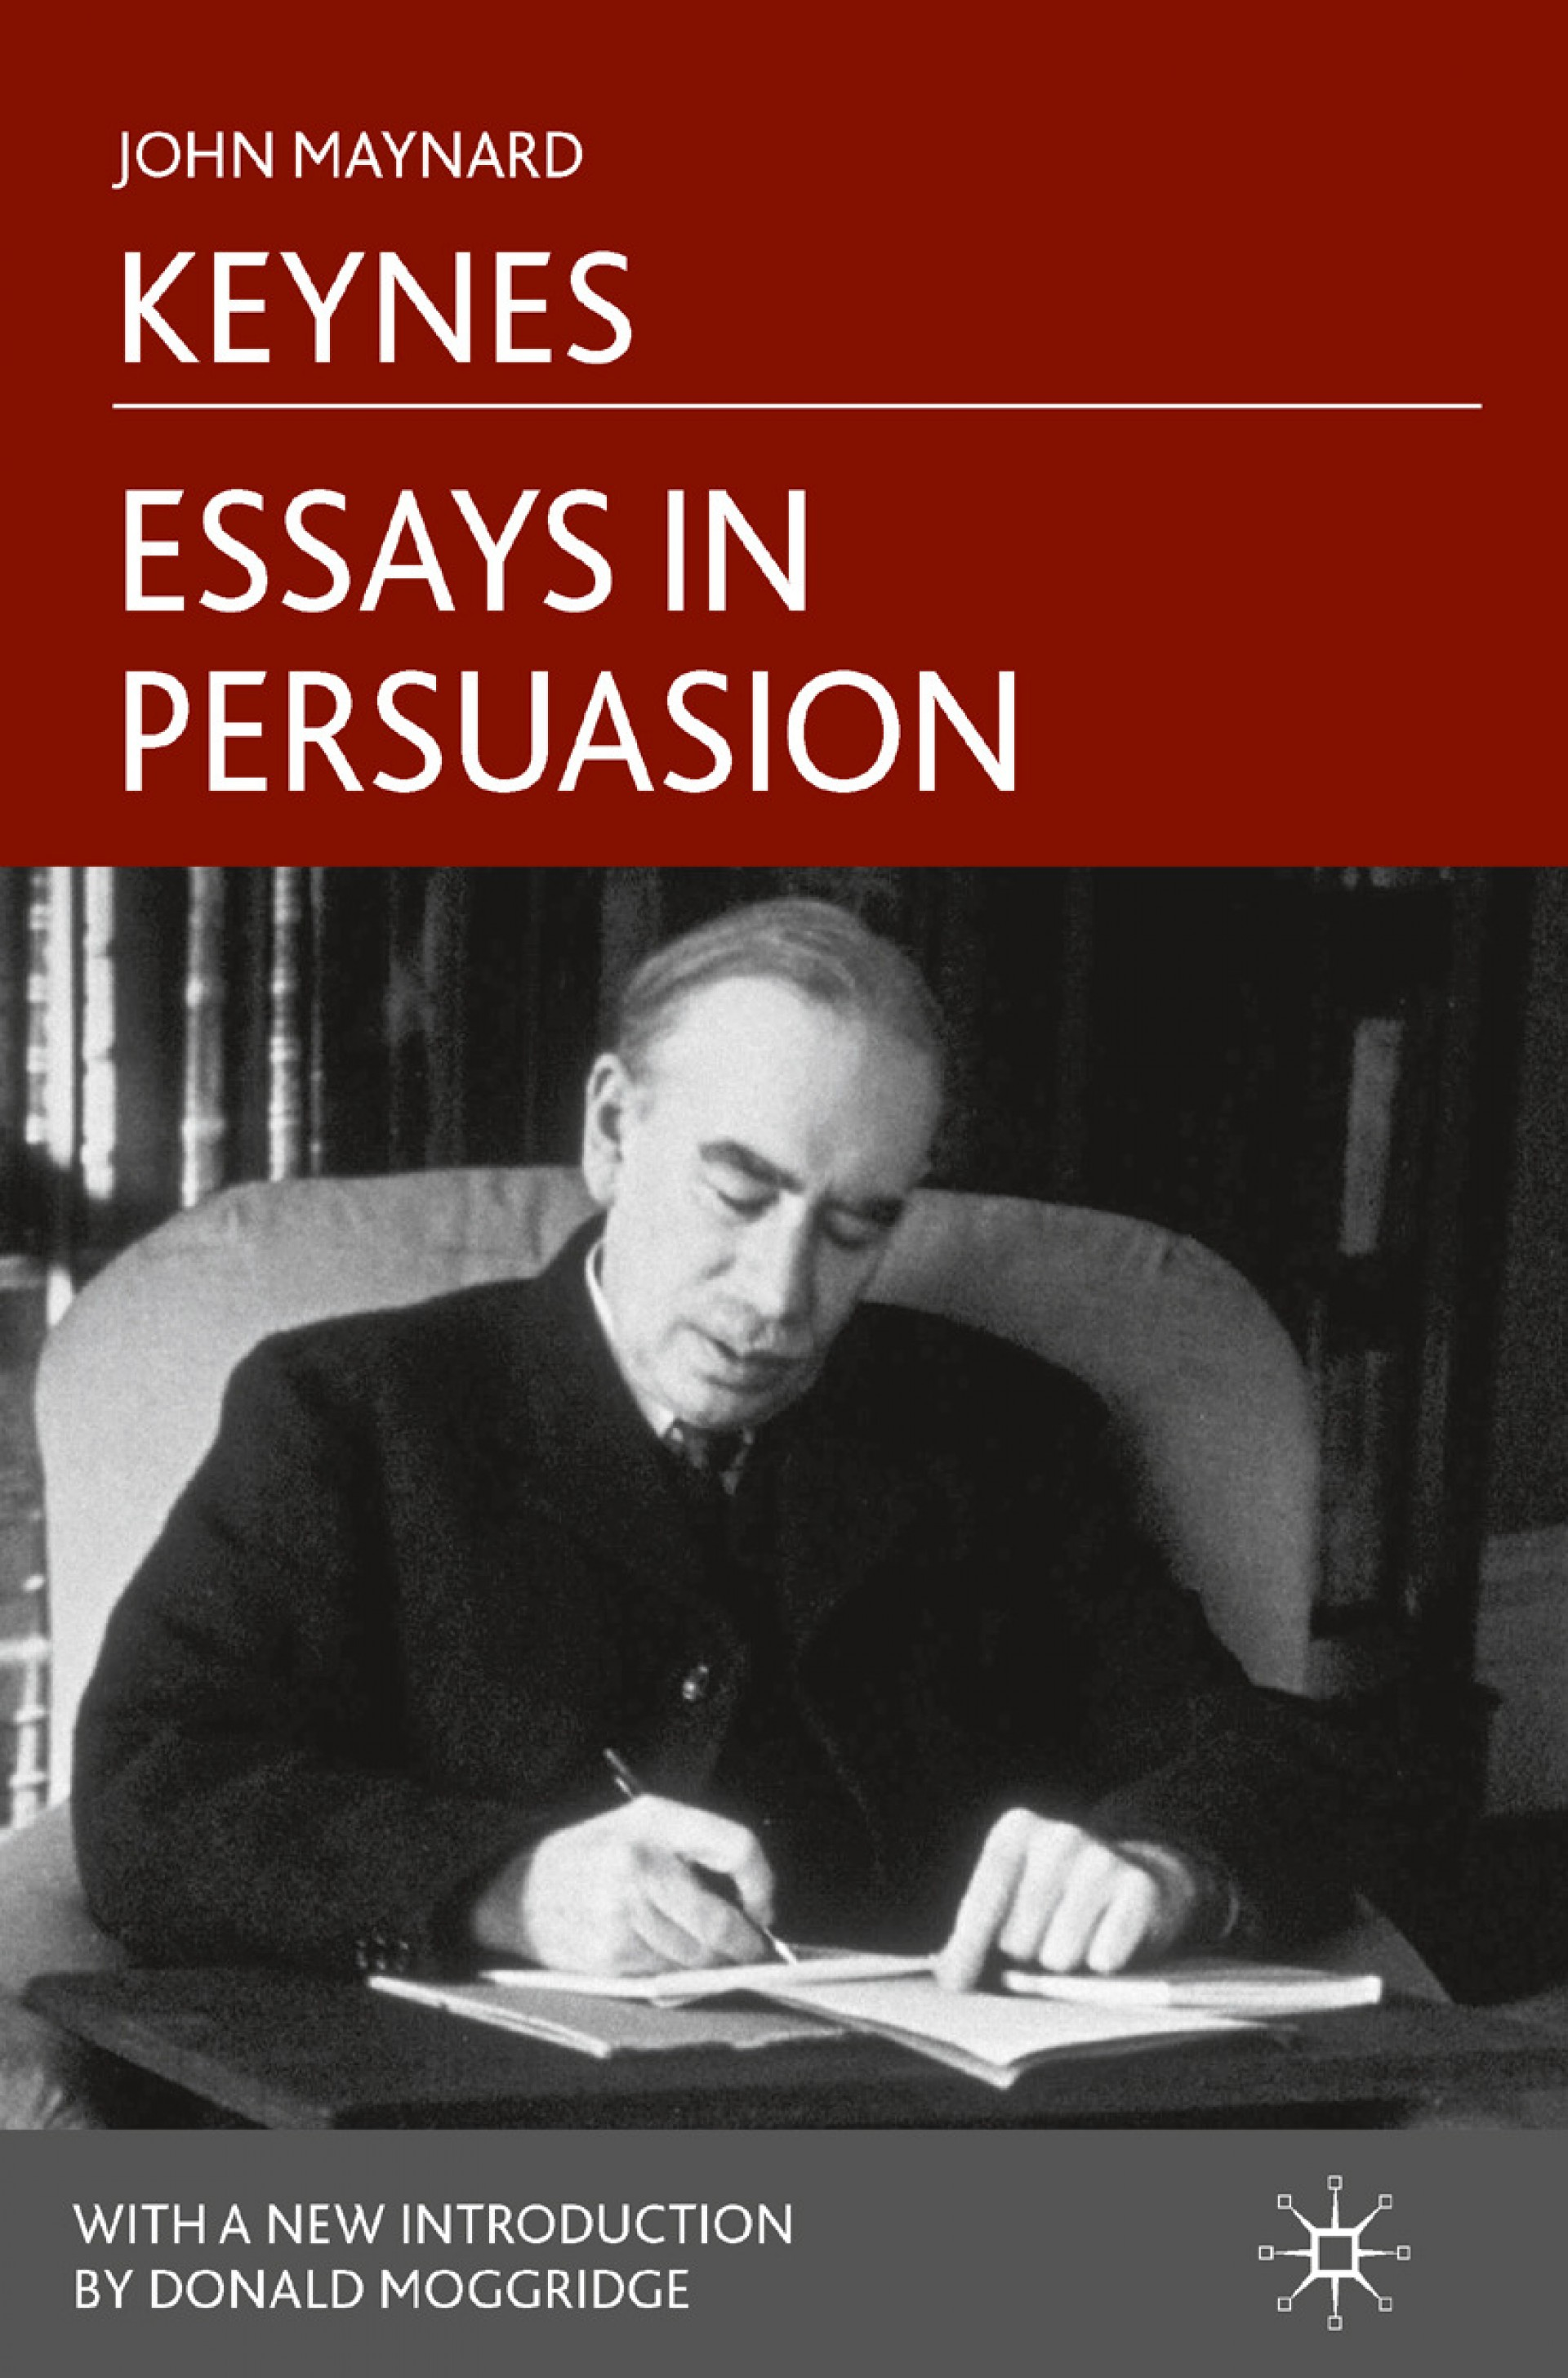 017 Essay Example Bookcover 978 Essays In Remarkable Persuasion Keynes 1931 Wikipedia Summary 1920